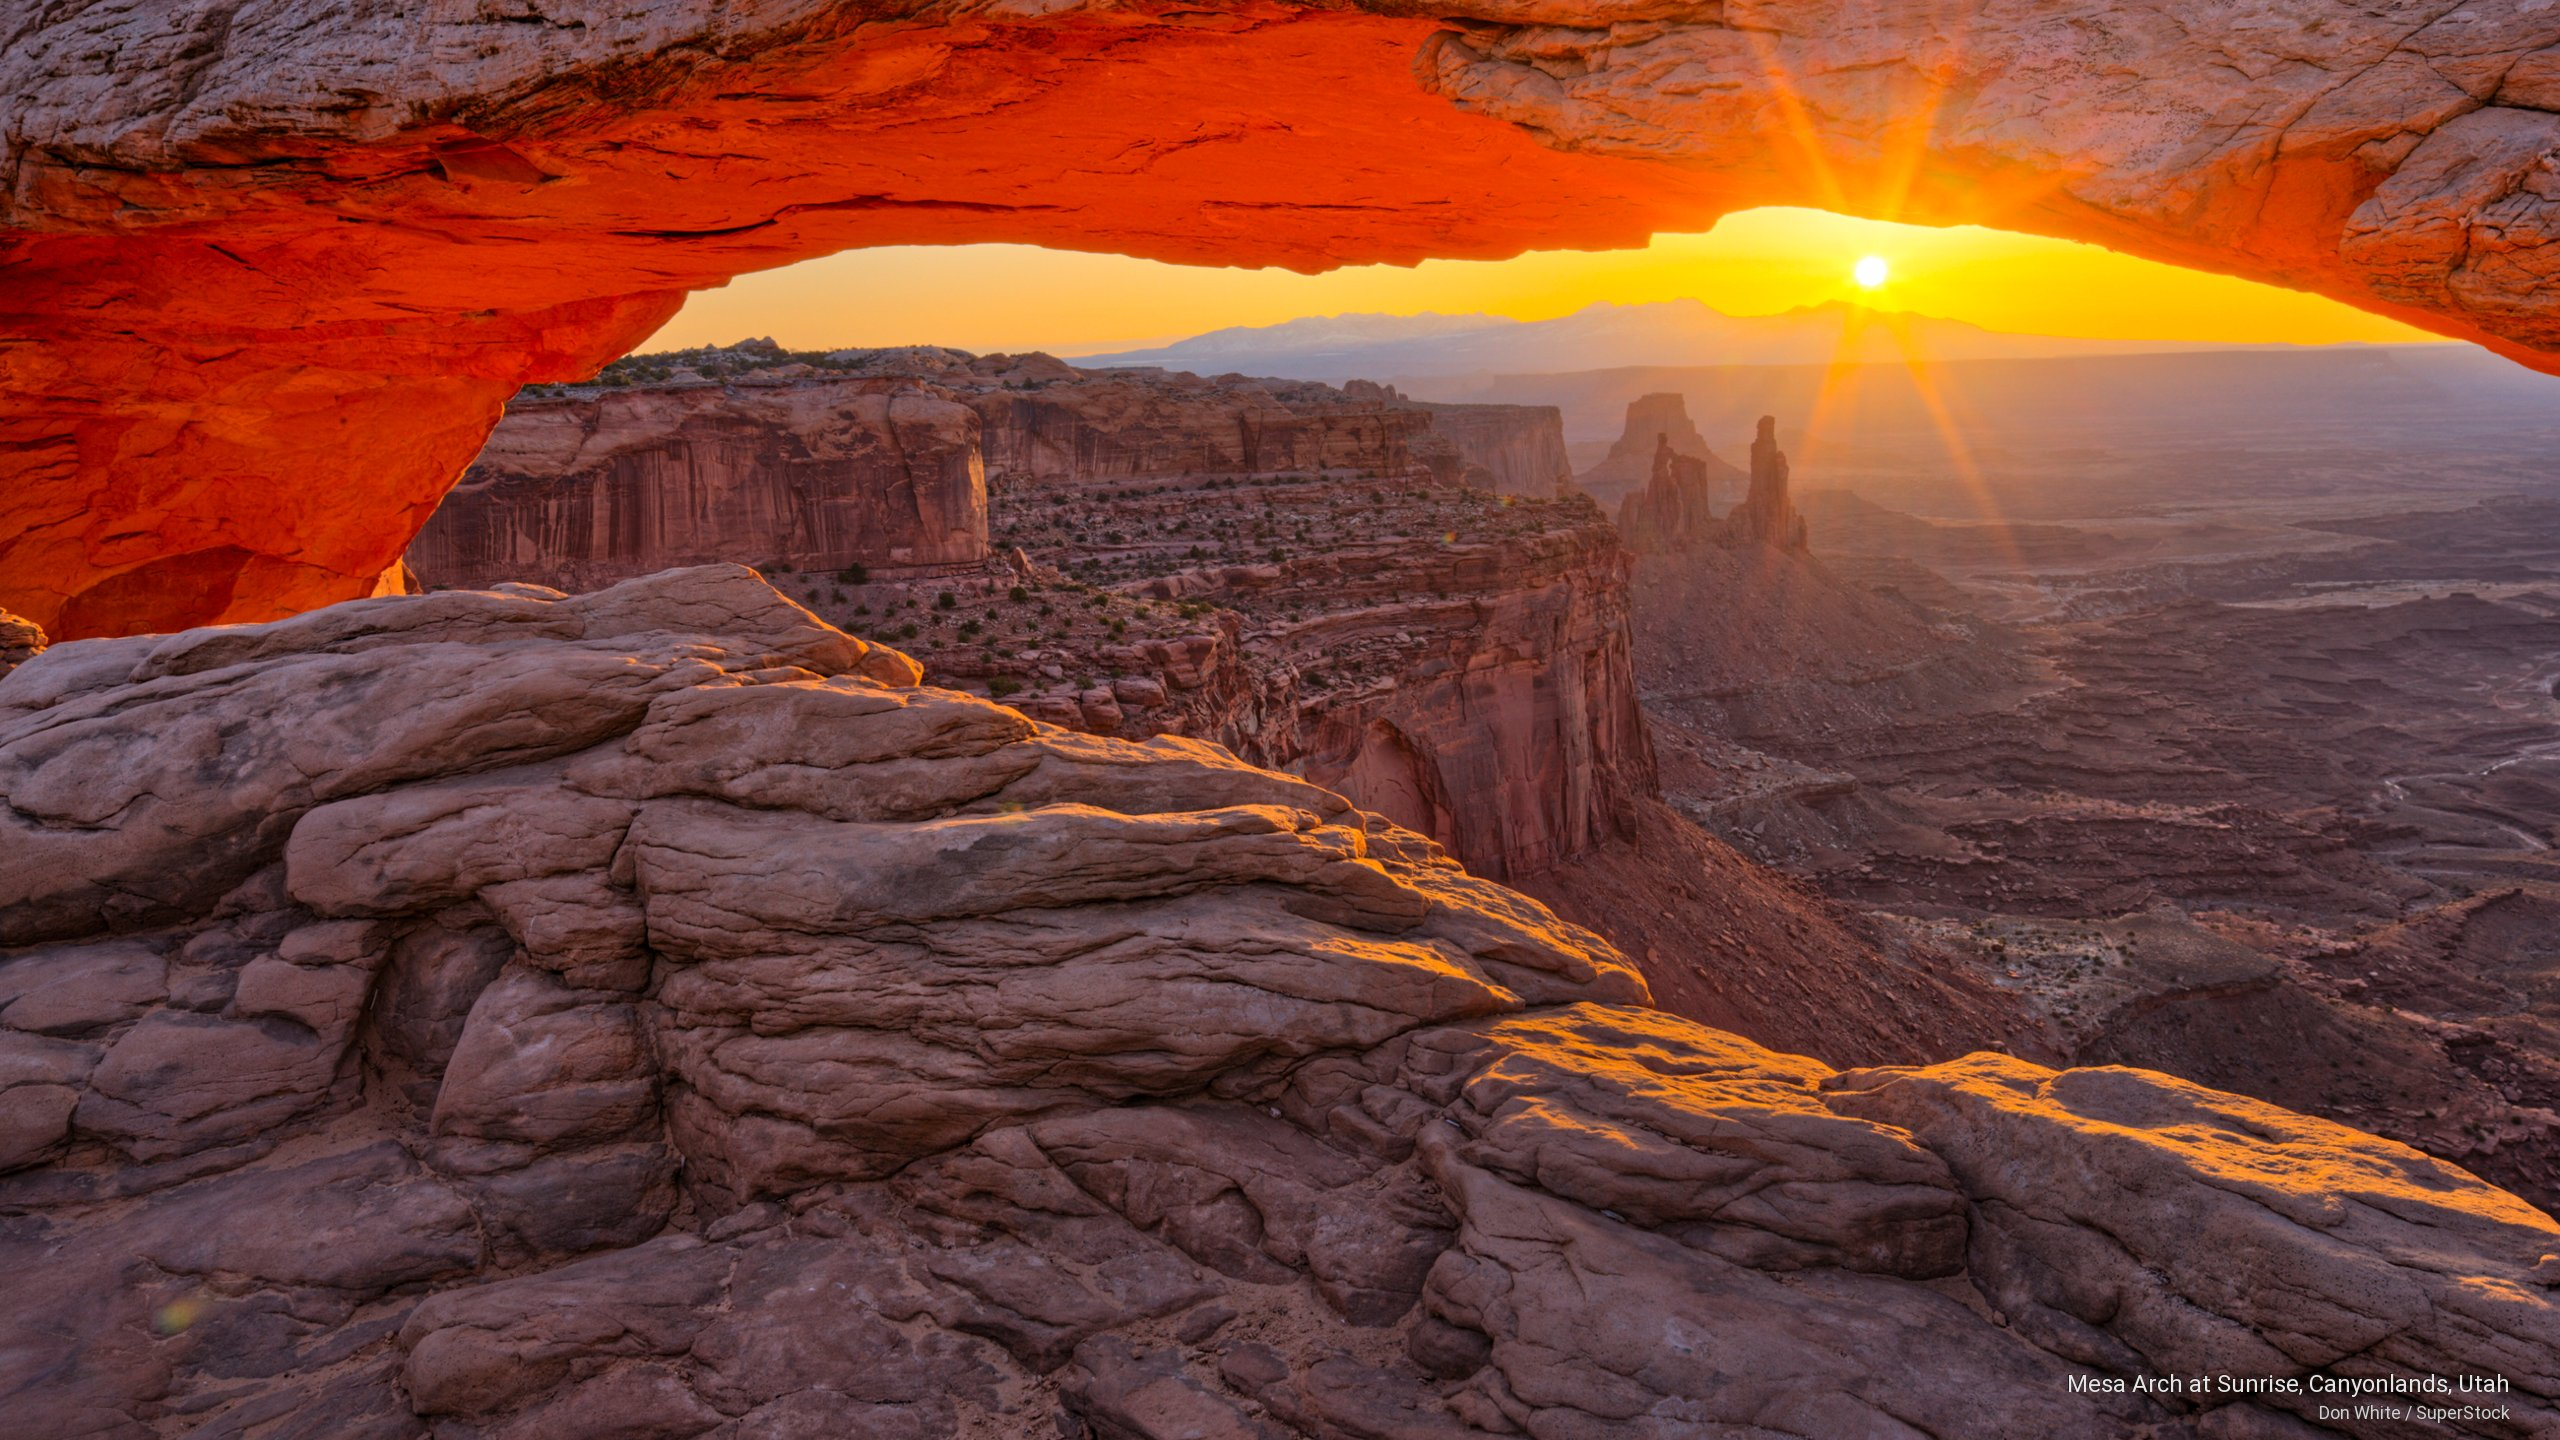 Wallpapersafari: Mesa Arch Wallpaper